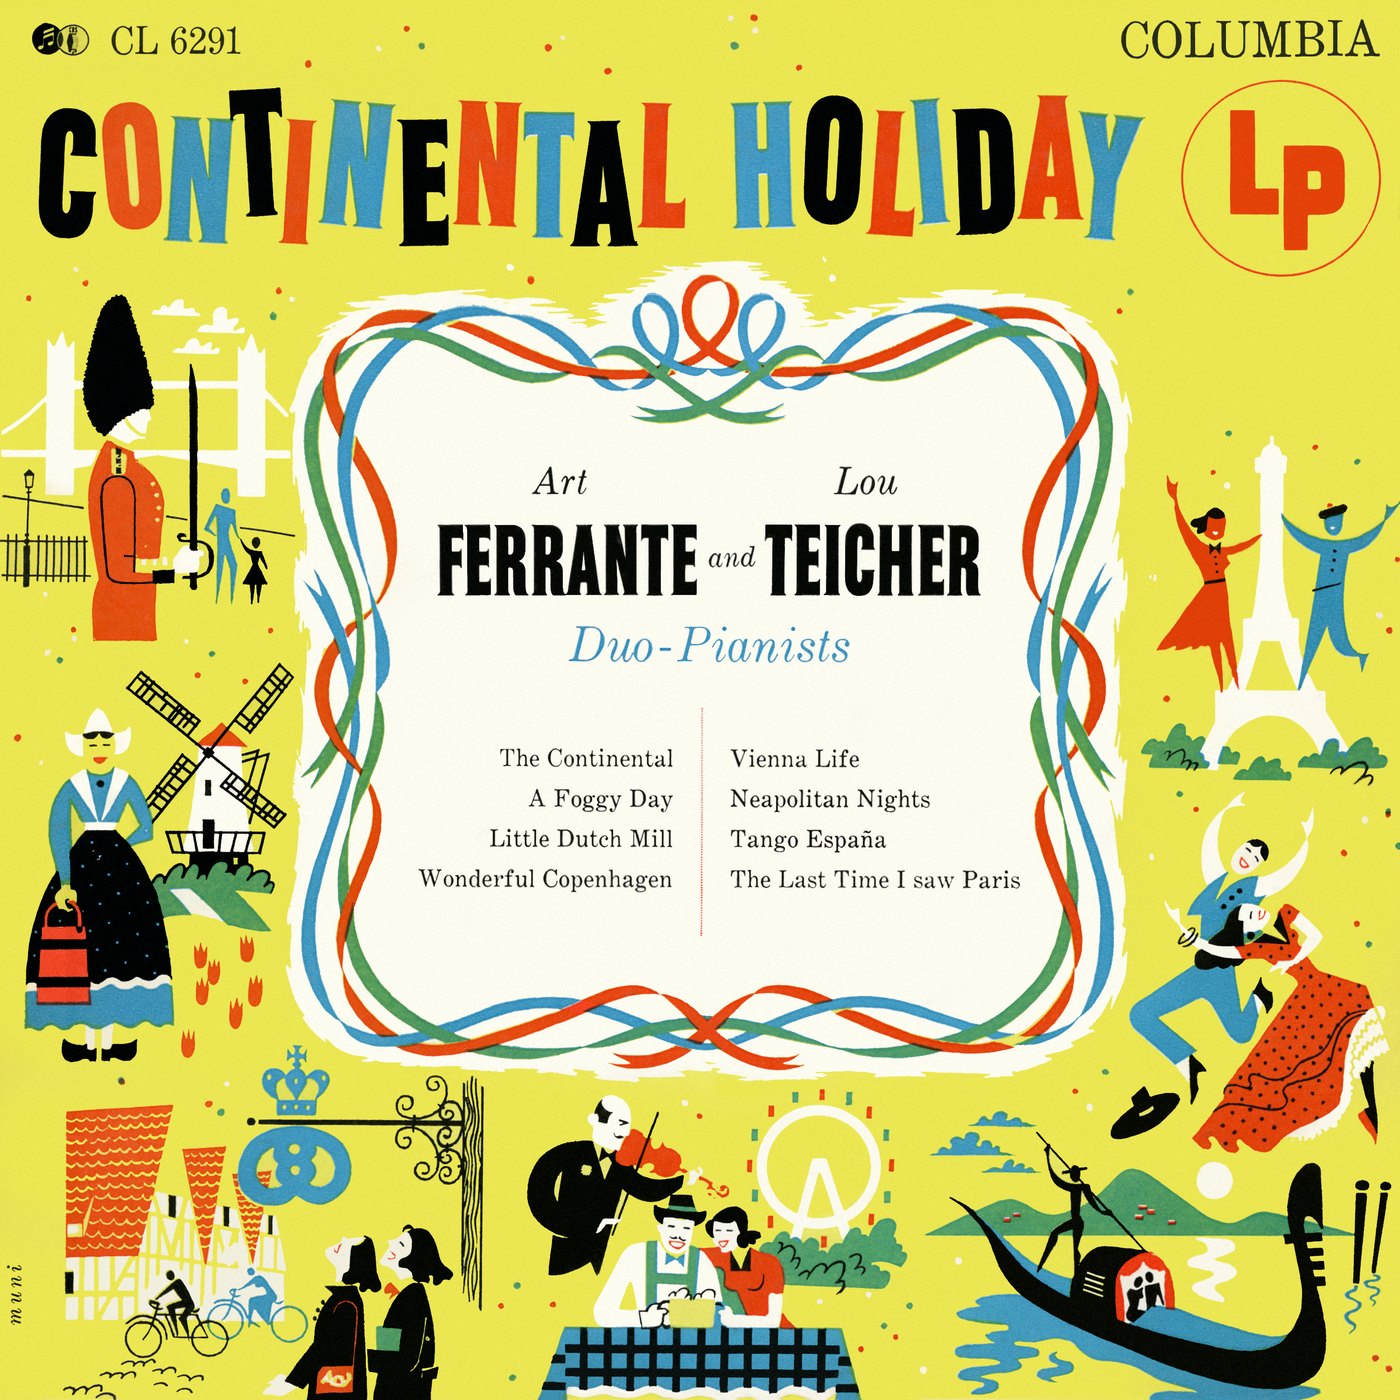 Continental Holiday - Ferrante & Teicher